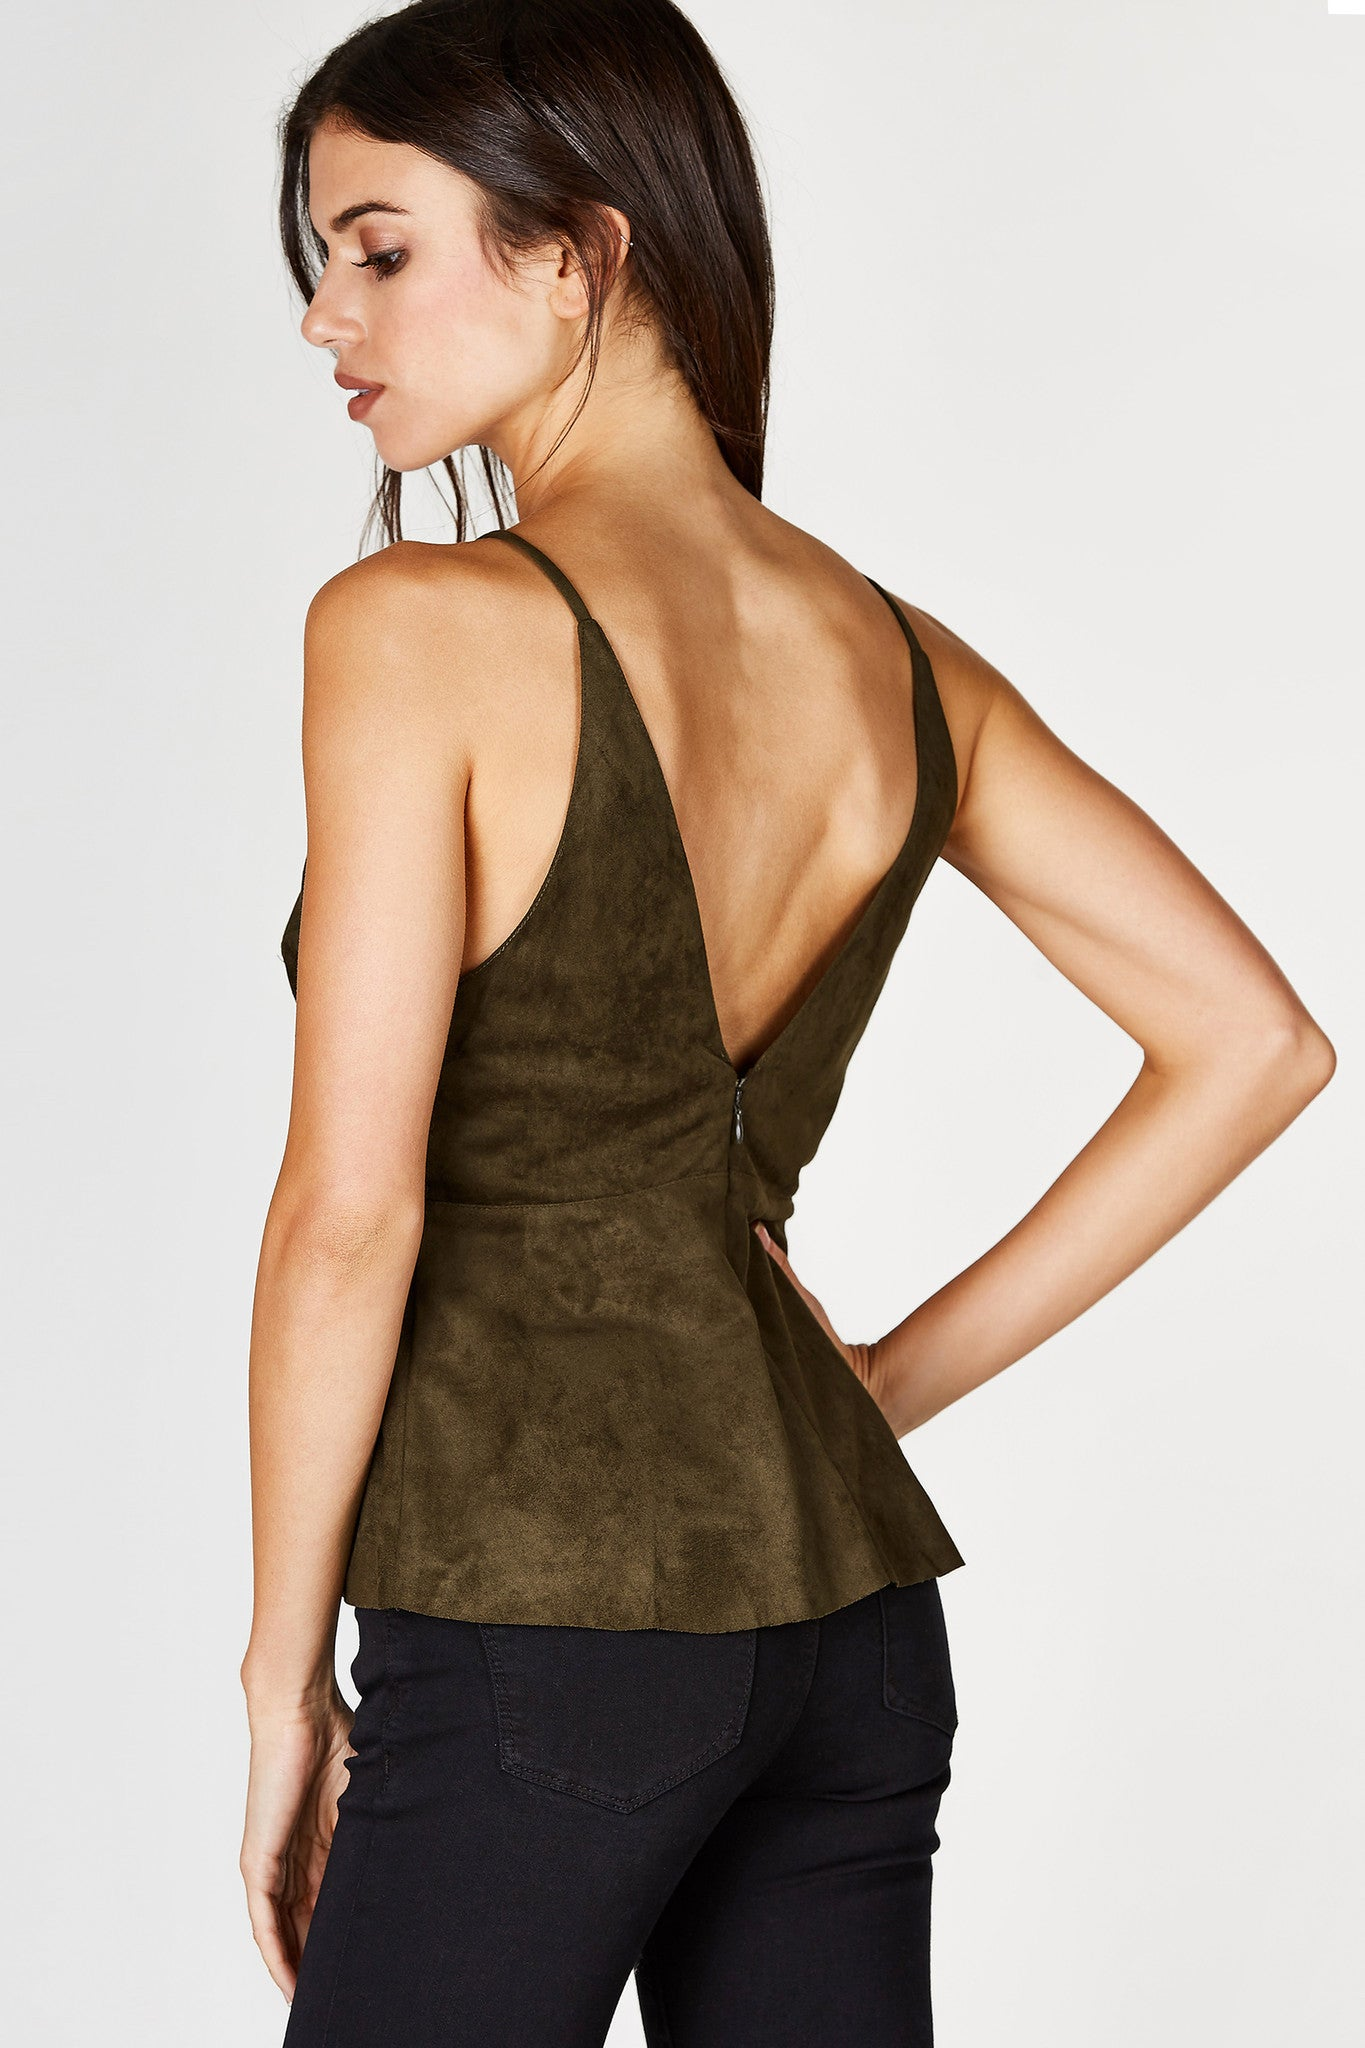 It's time to embrace the upcoming Season's trend. This gorgeous suede finish top is perfect for a casual daytime look or even a sultry nighttime outfit. Deep V-neckline with classic spaghetti straps. Flared raw hem with a hidden zip closure in the back.